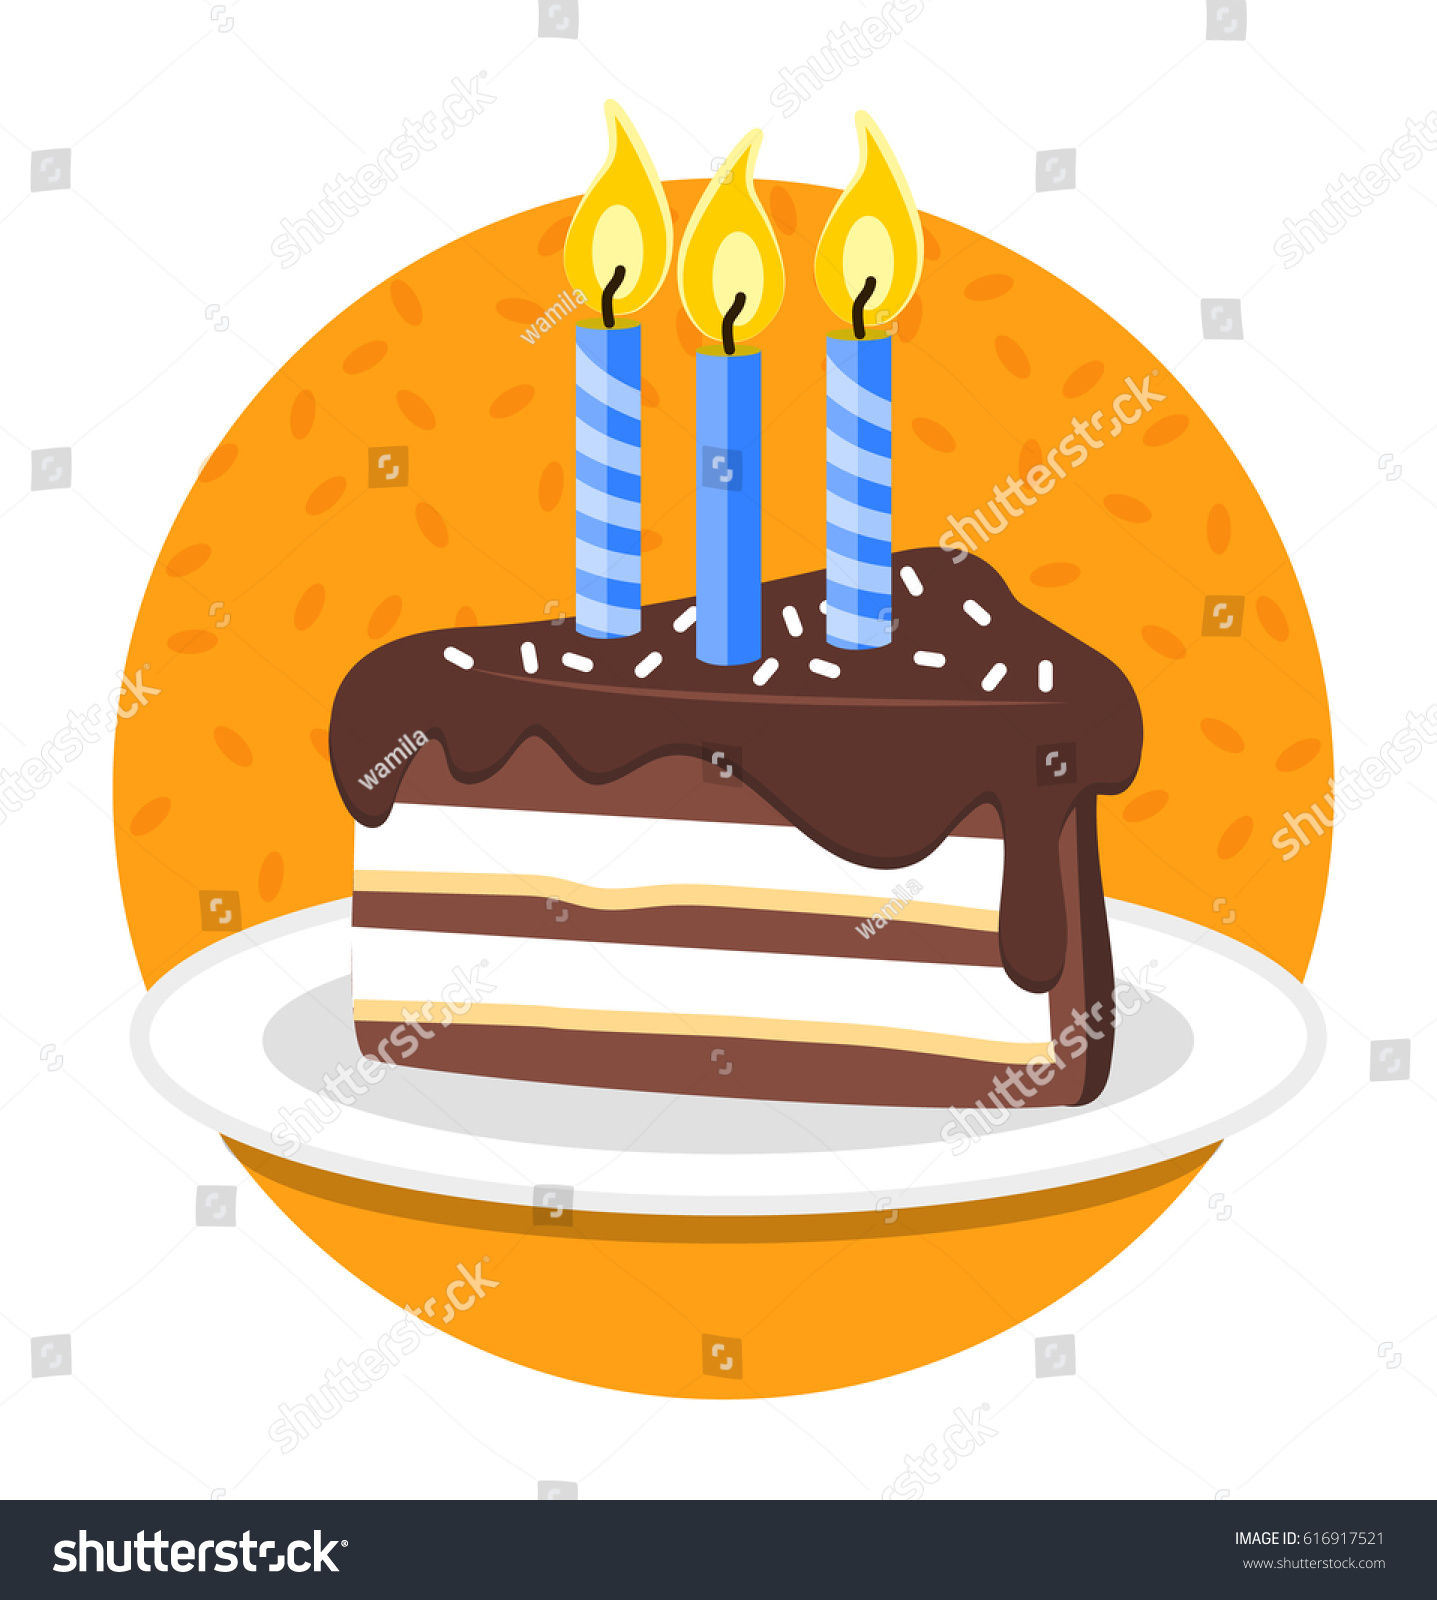 Happy Birthday Slice Birthday Cake Vector Stock Vector 616917521